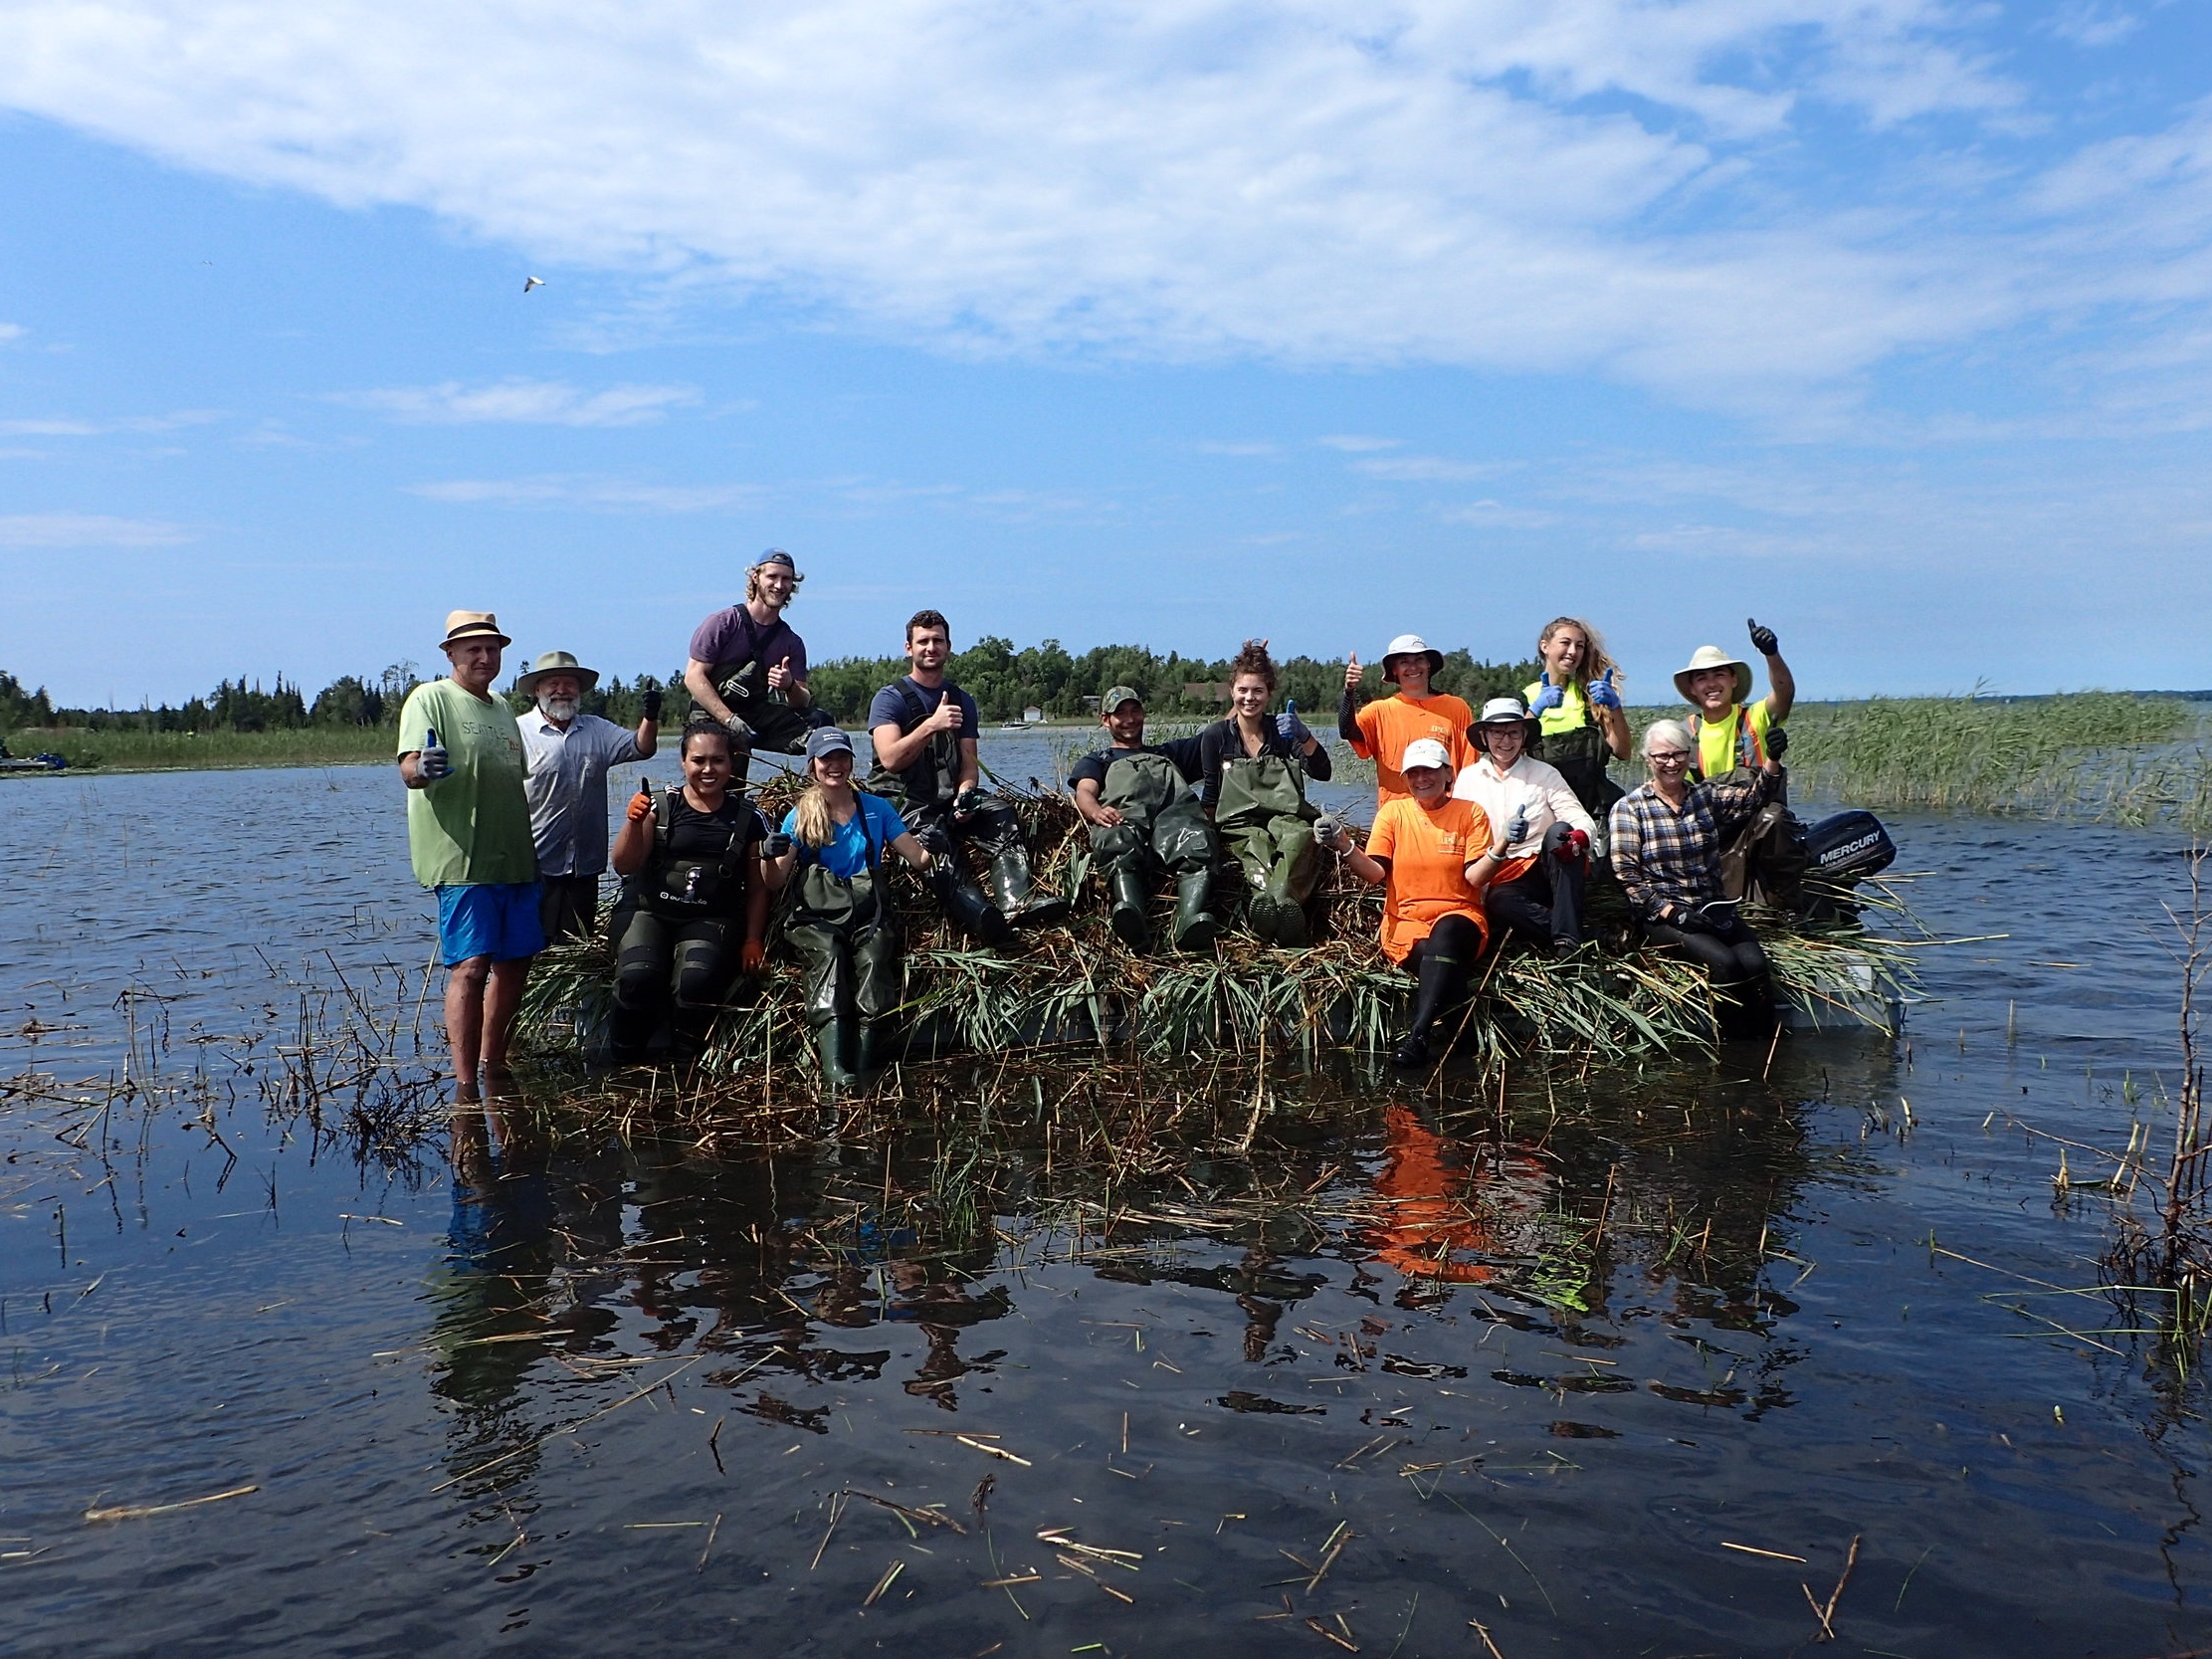 Volunteers from the Fighting Islands Community Group, Bruce Peninsula Biosphere ASsociation, the IPCC cutting crew, and the Saugeen Conservation Authority,